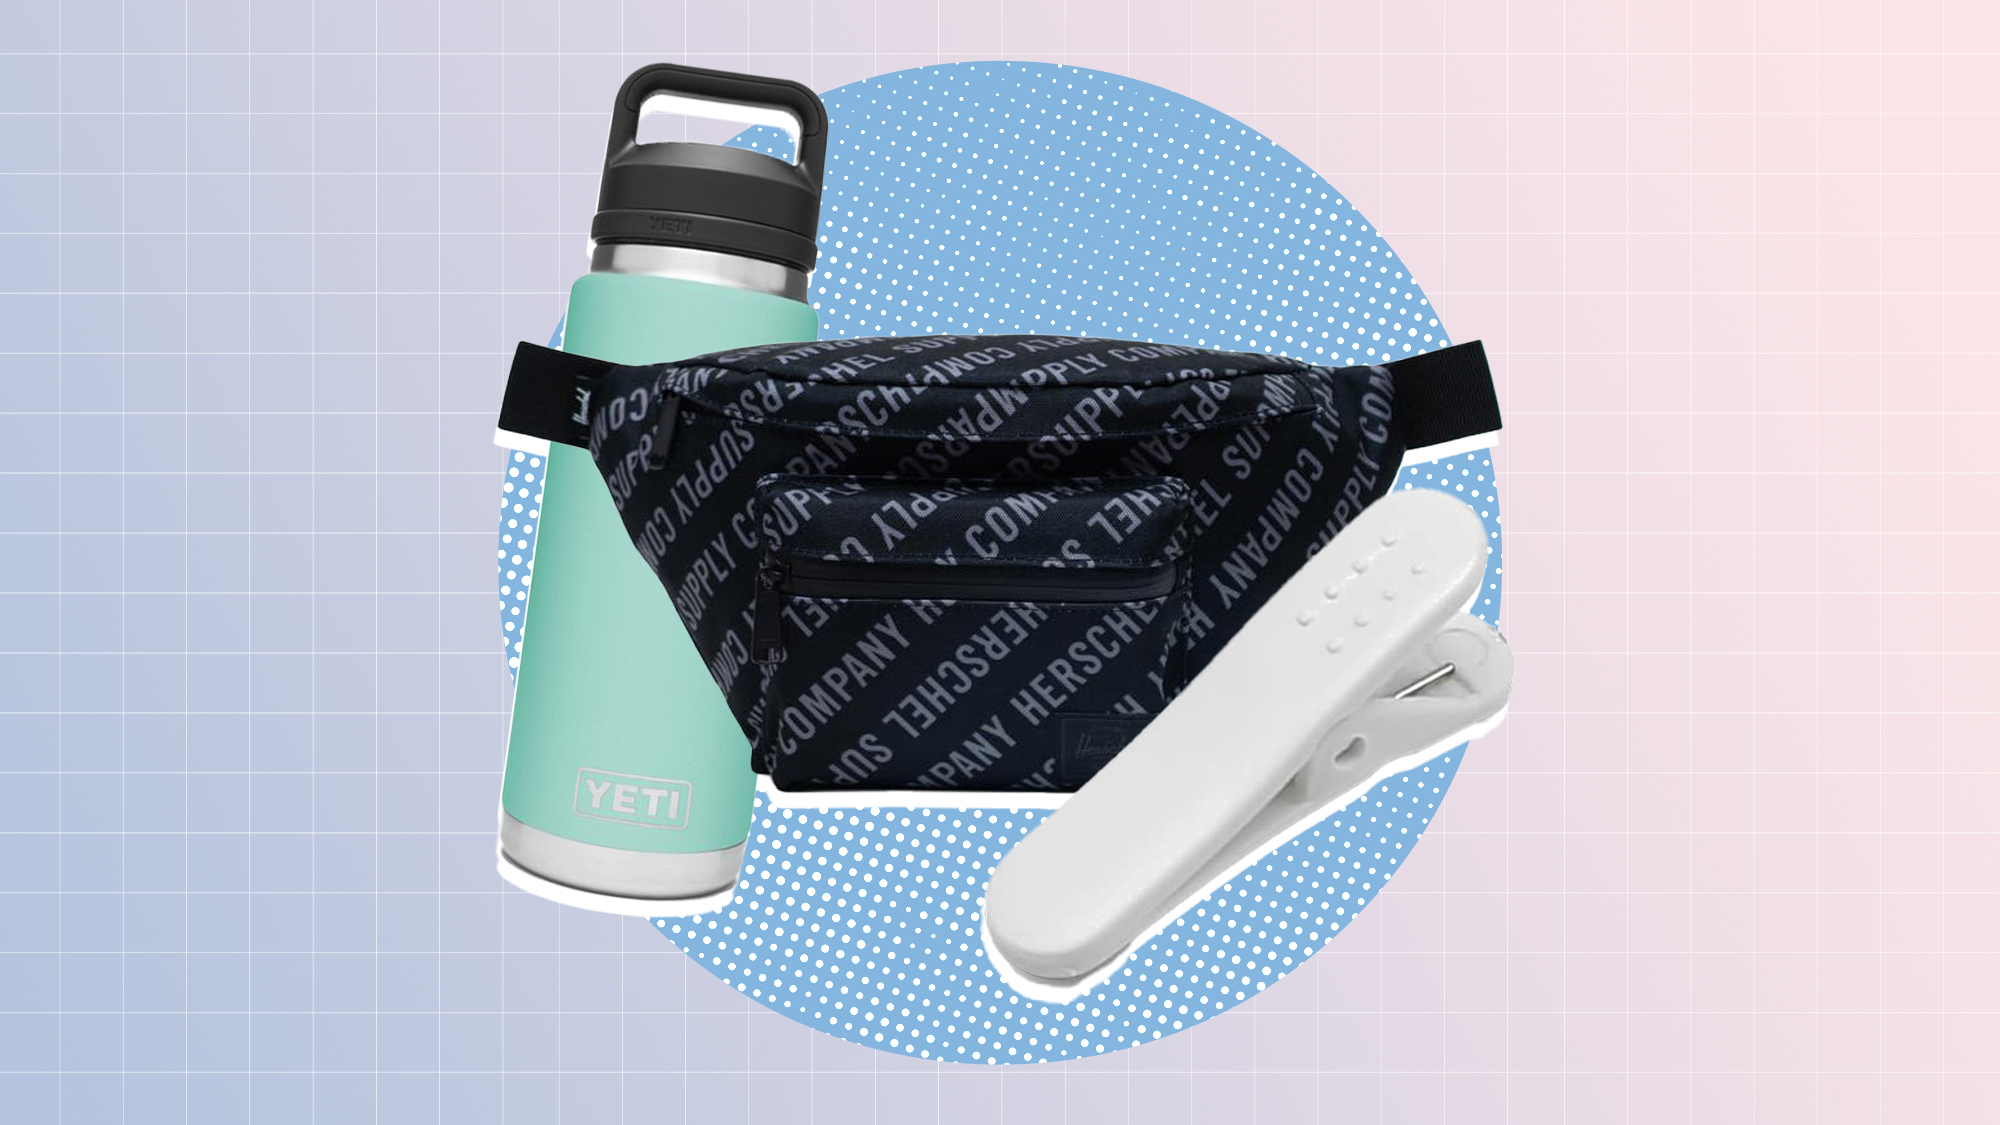 a selection of 3 fitness related items on a designed background